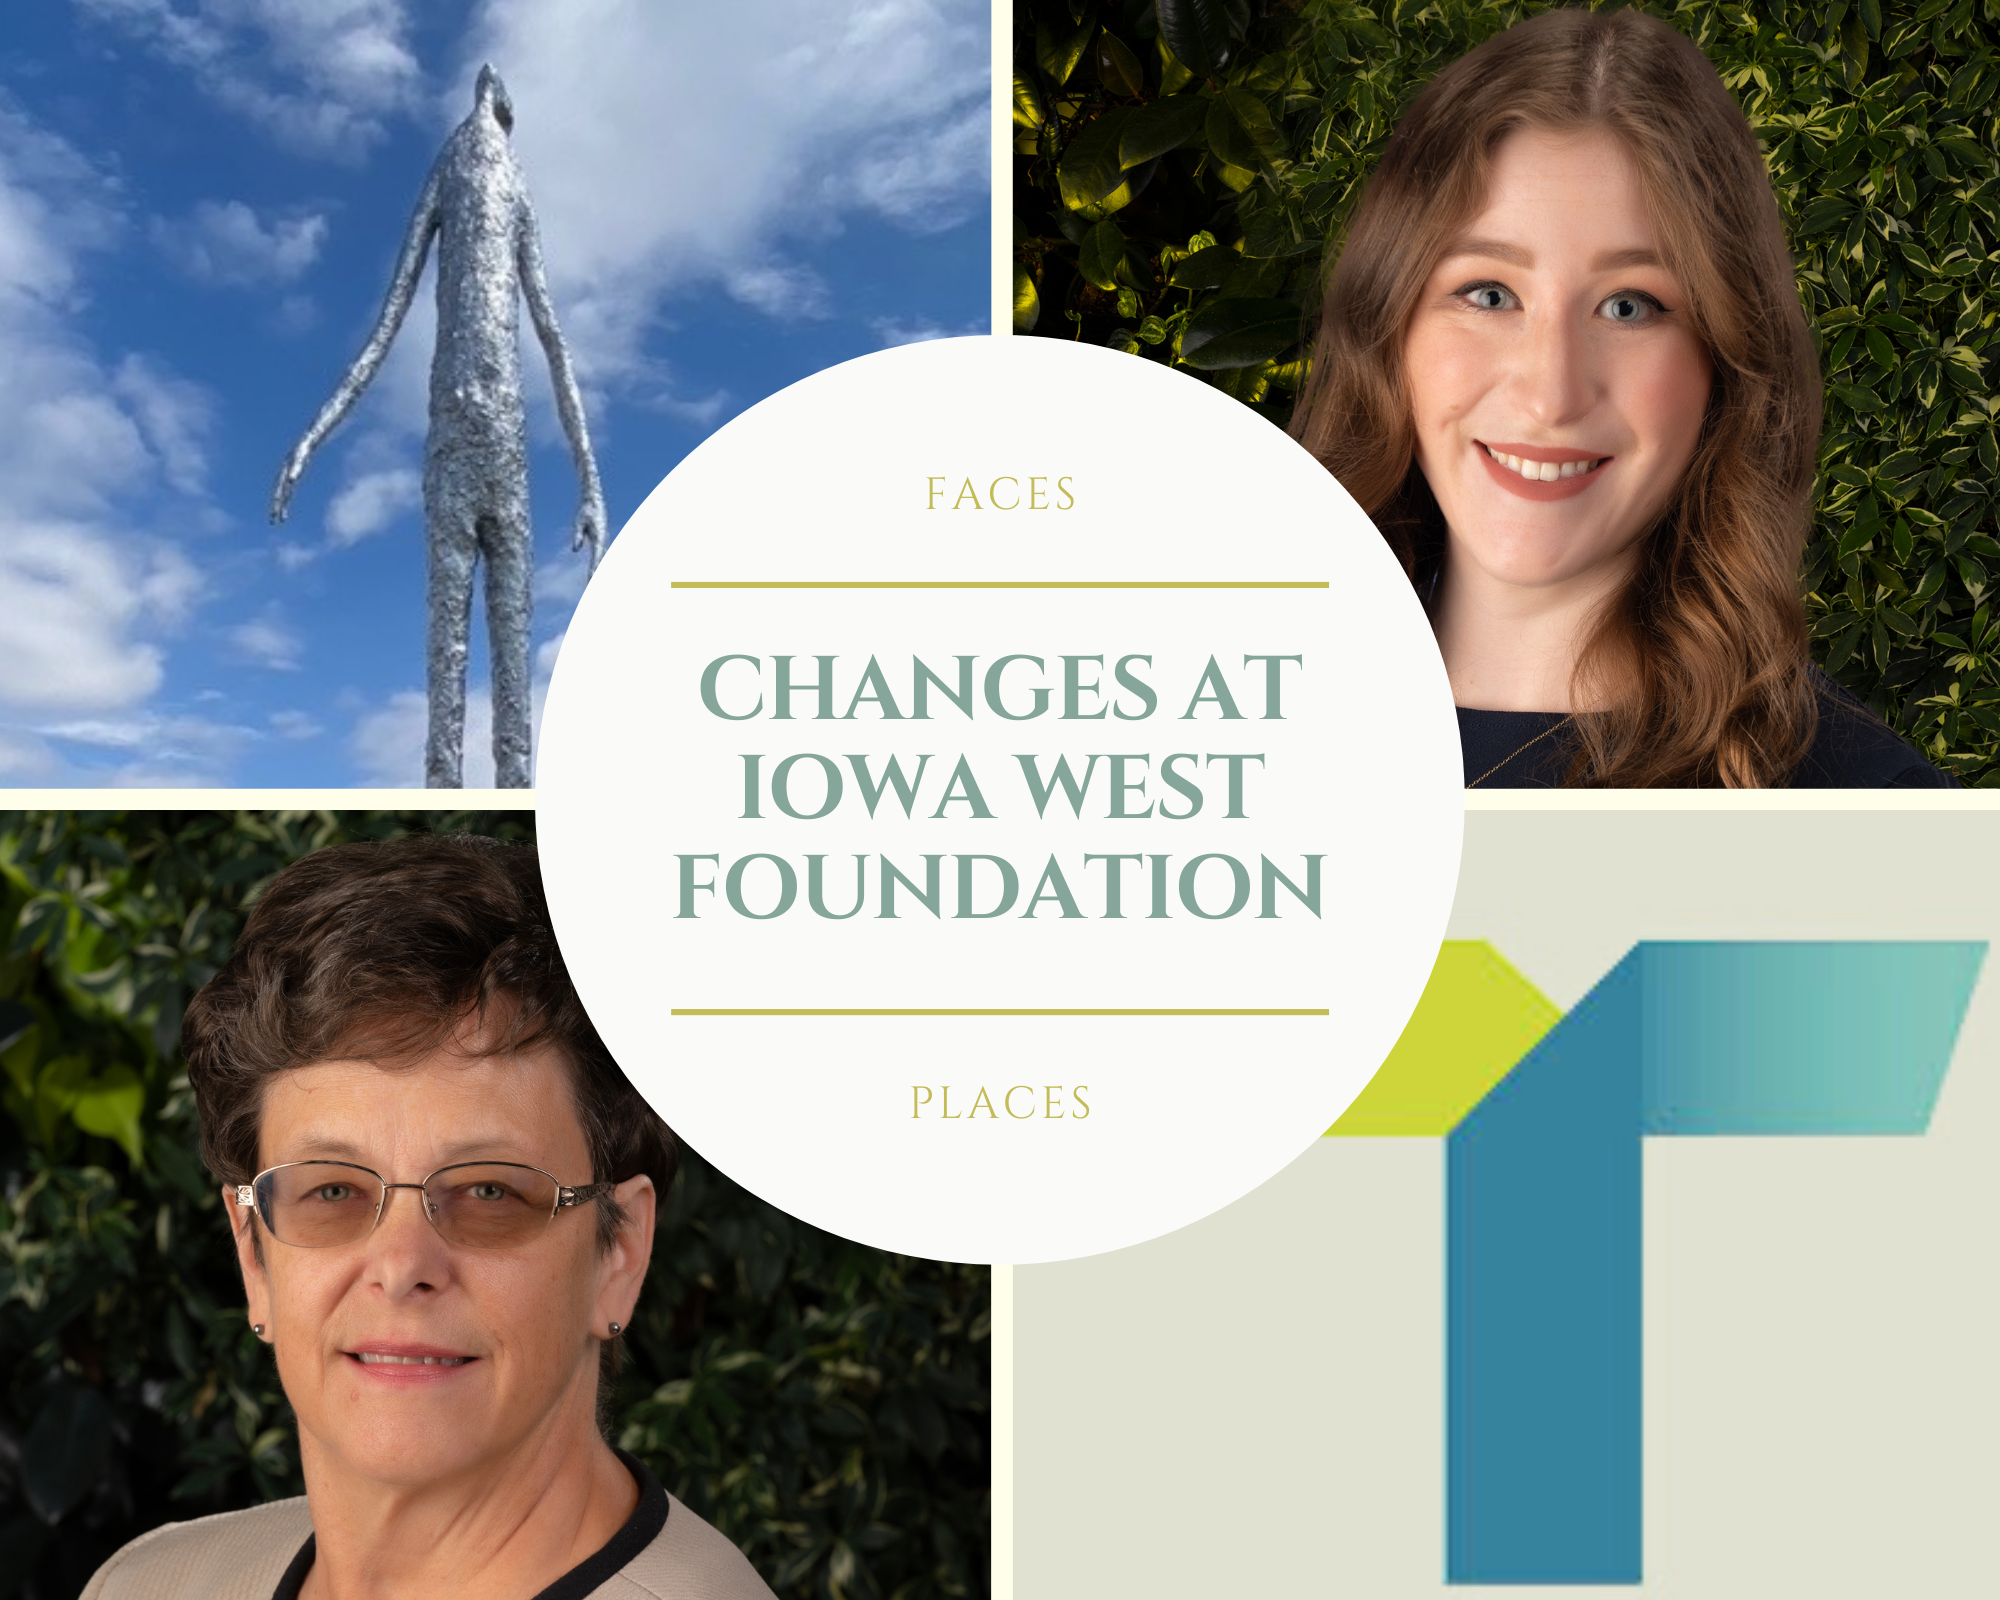 Changes at the Iowa West Foundation